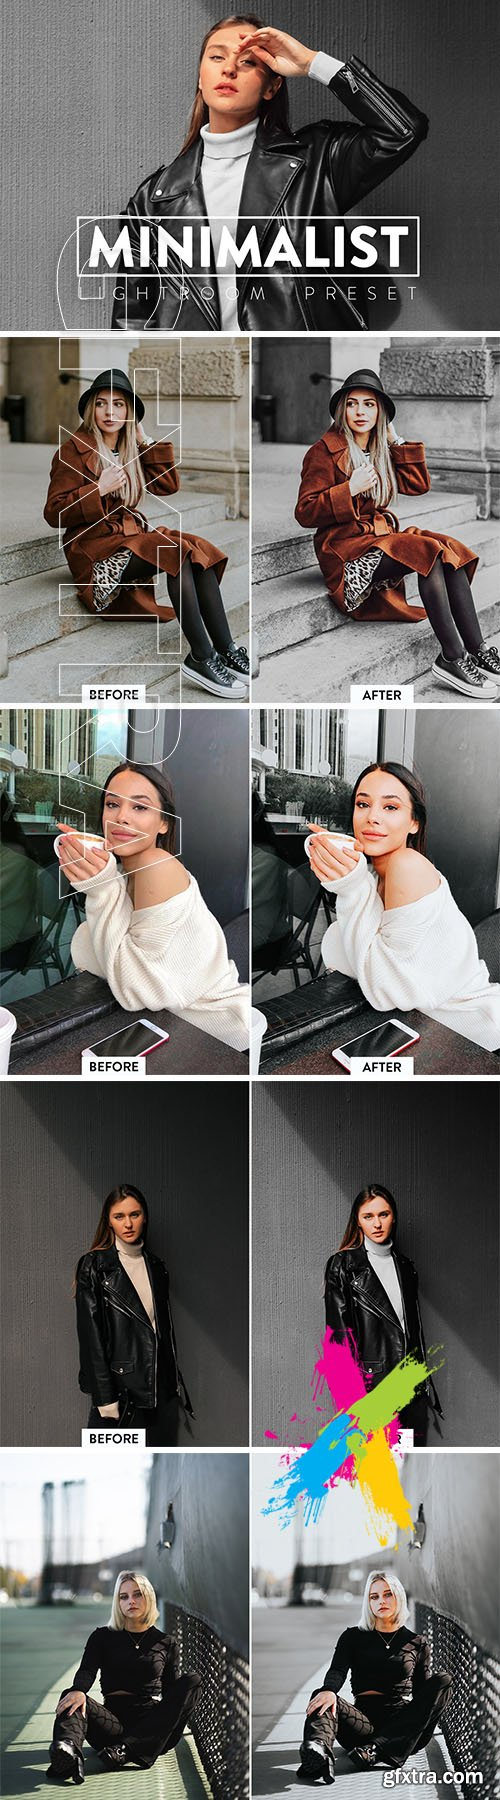 CreativeMarket - 10 MINIMAL Lightroom Mobile Presets 5748193